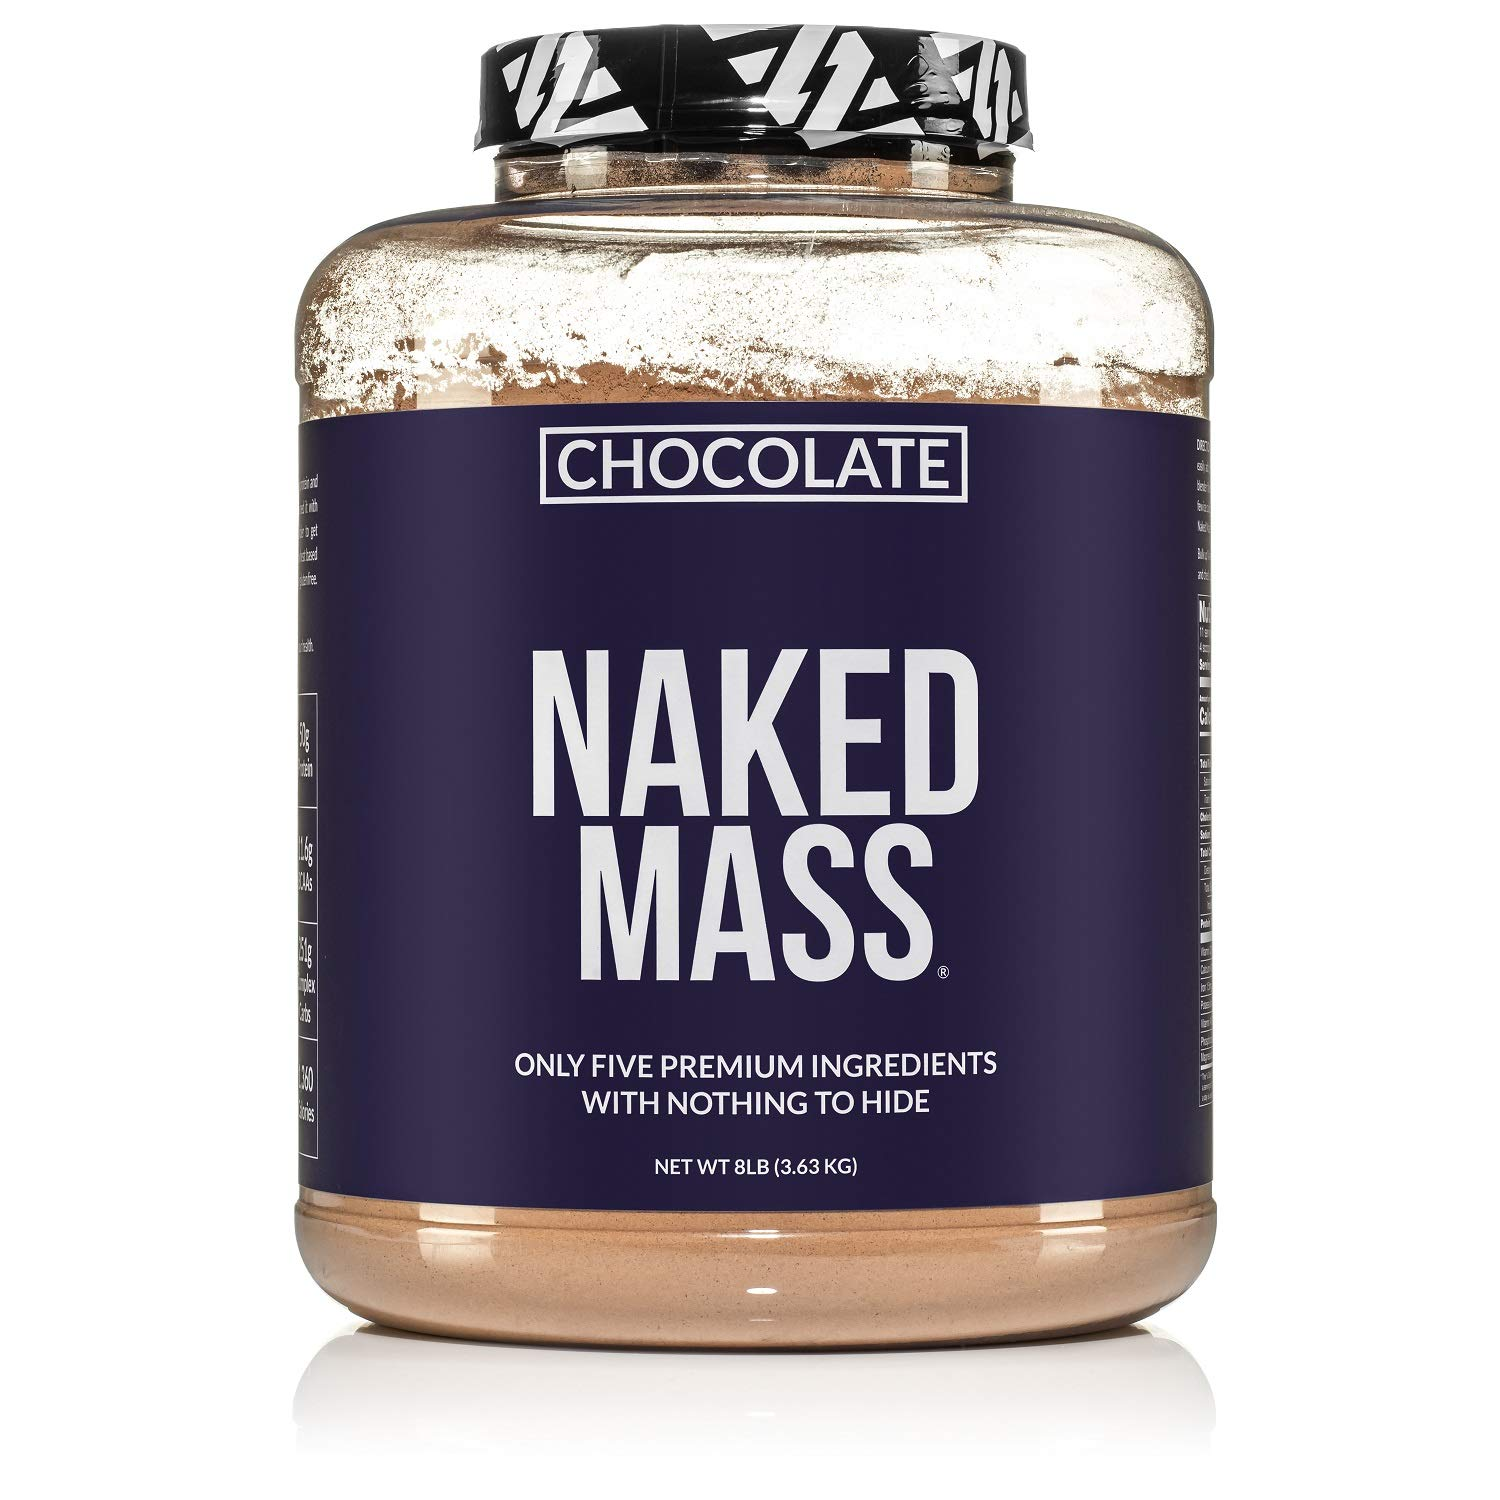 Chocolate Naked Mass - All Natural Chocolate Weight Gainer Protein Powder - 8lb Bulk, GMO Free, Gluten Free & Soy Free. No Artificial Ingredients - 1,360 Calories - 11 Servings